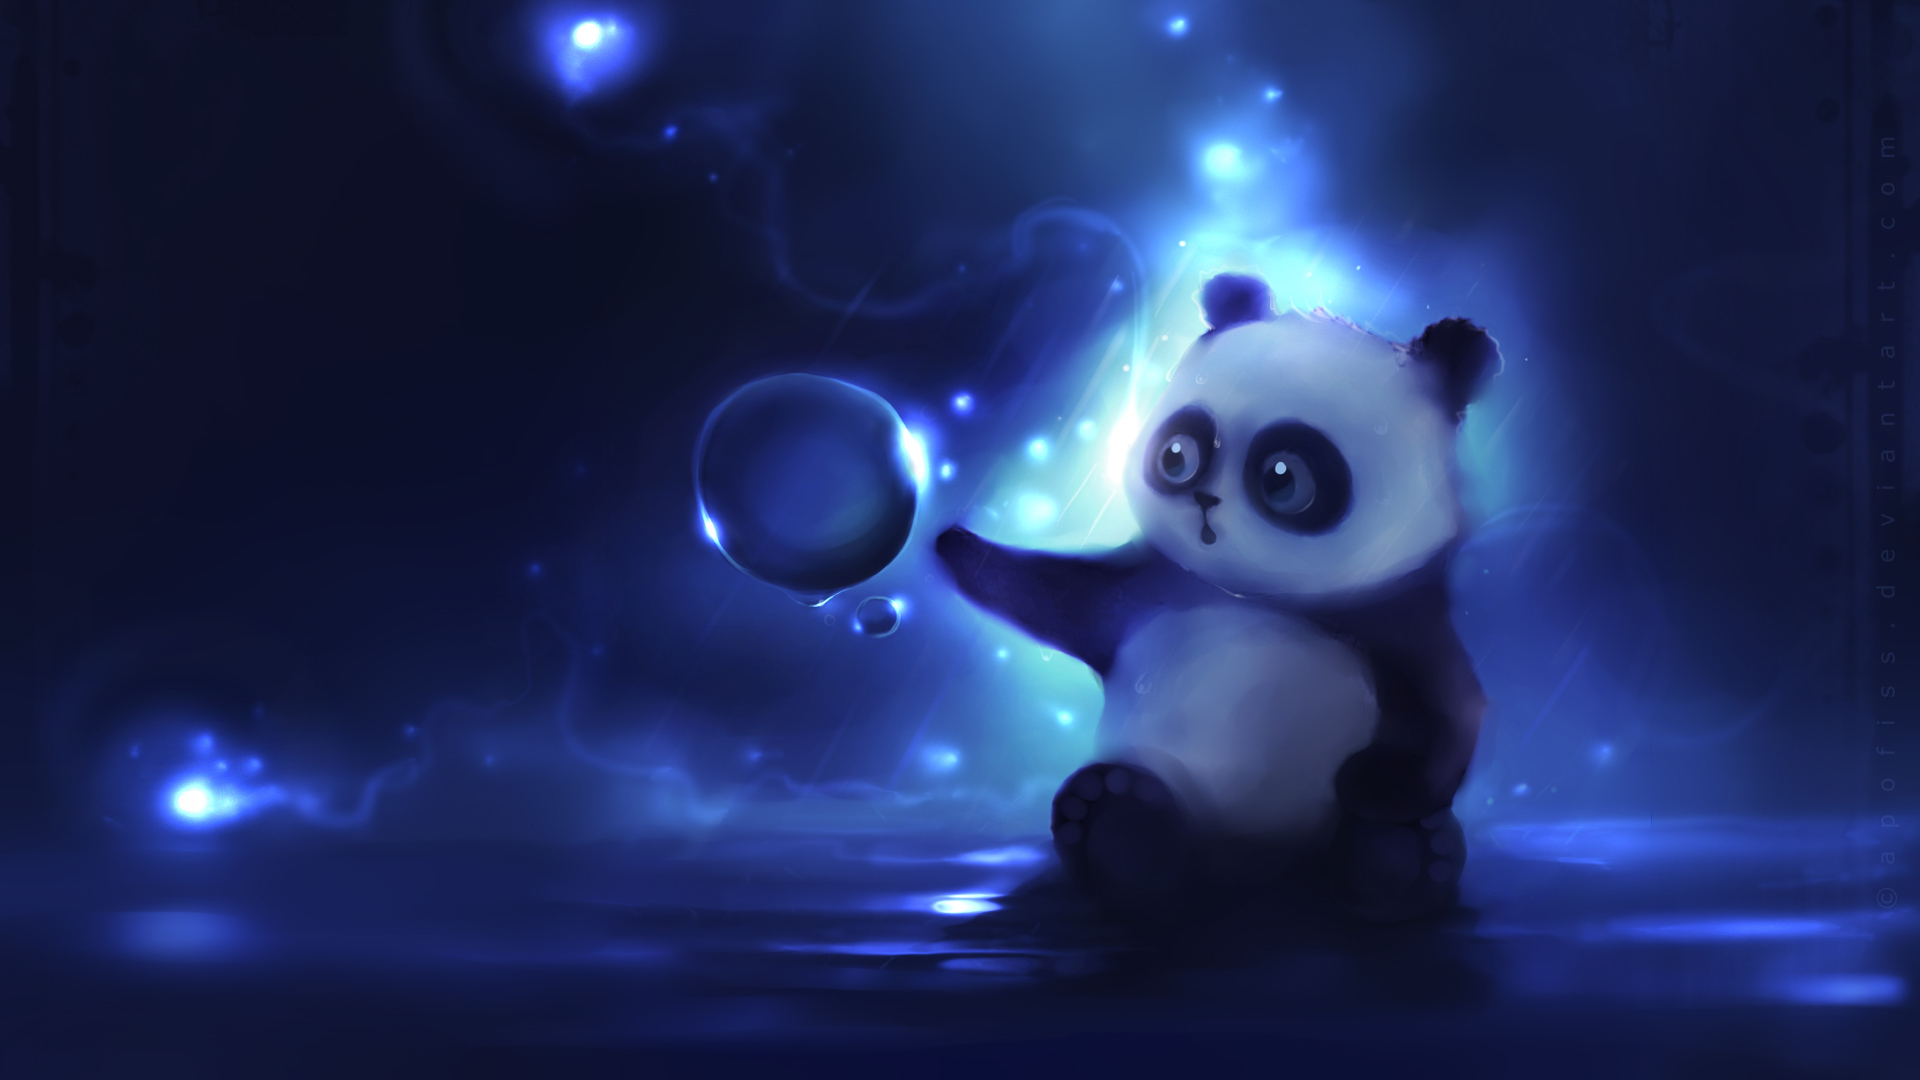 Cute Baby Panda Wallpaper Hd Wallpaper Wallpaperlepi